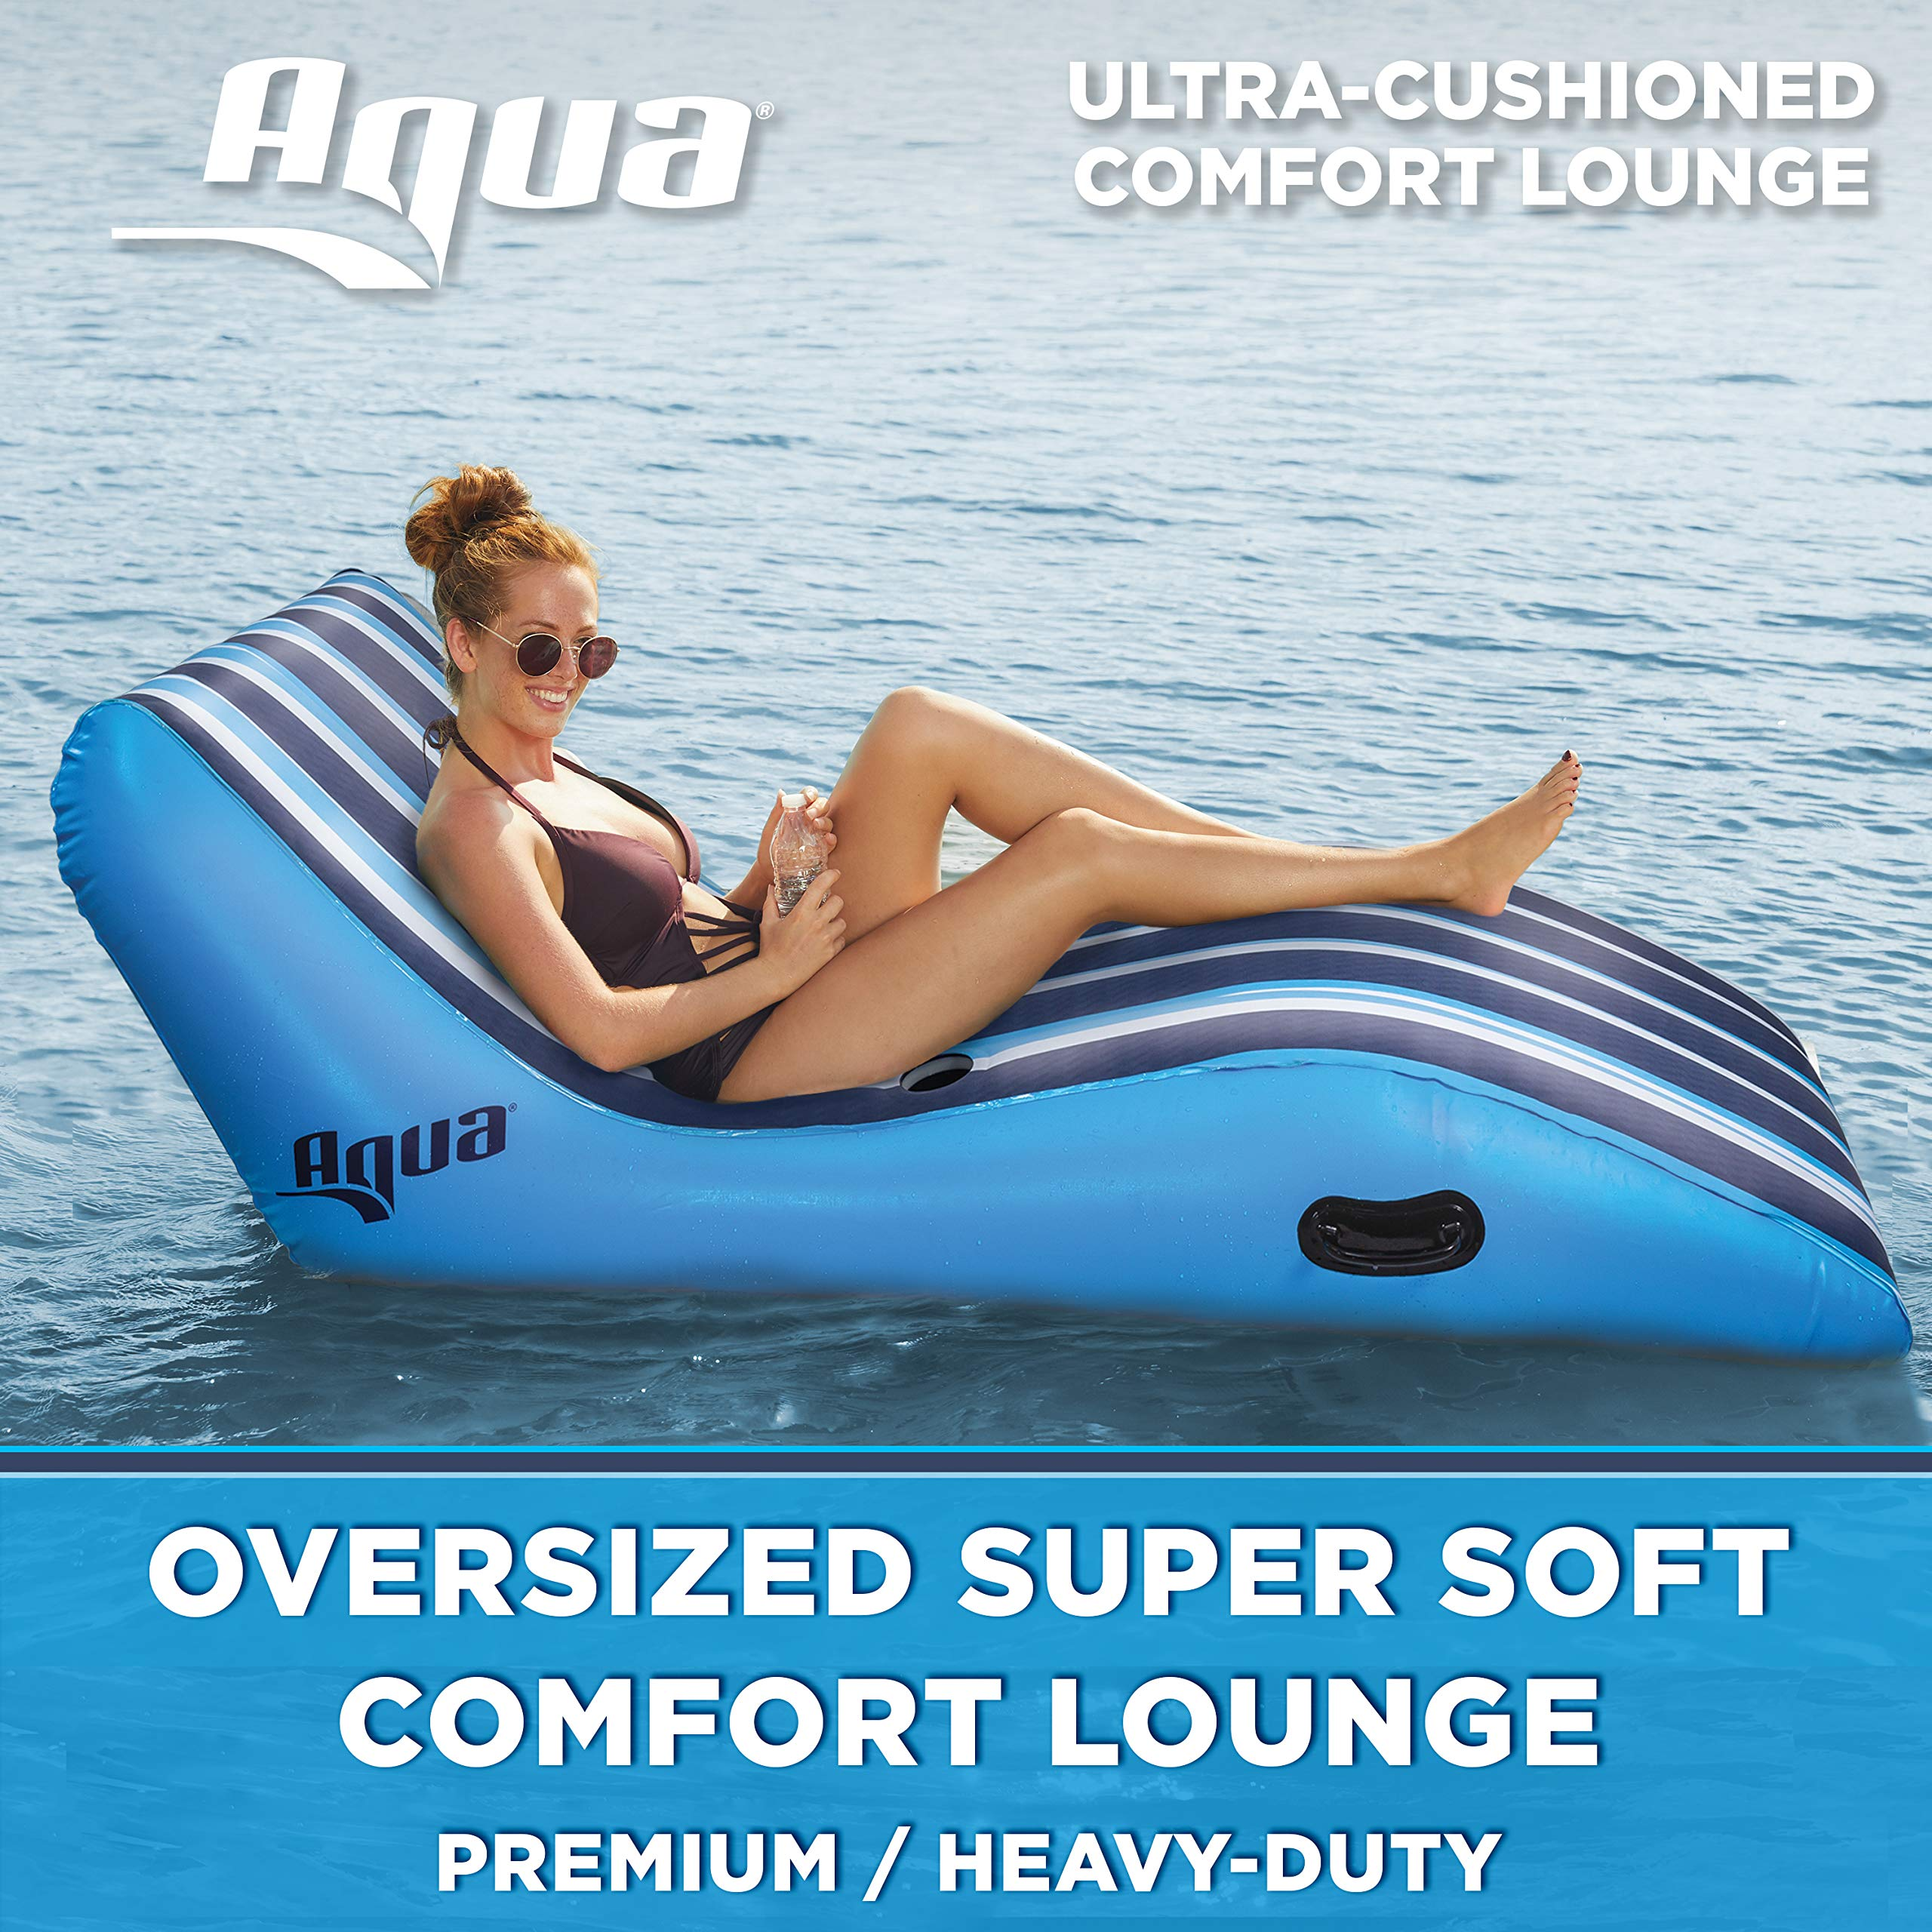 Aqua Ultra Comfort Recliner Lounge, One 1-Person, Heavy Duty, X-Large, Lounge Pool Float, Navy/White Stripe by Aqua (Image #1)